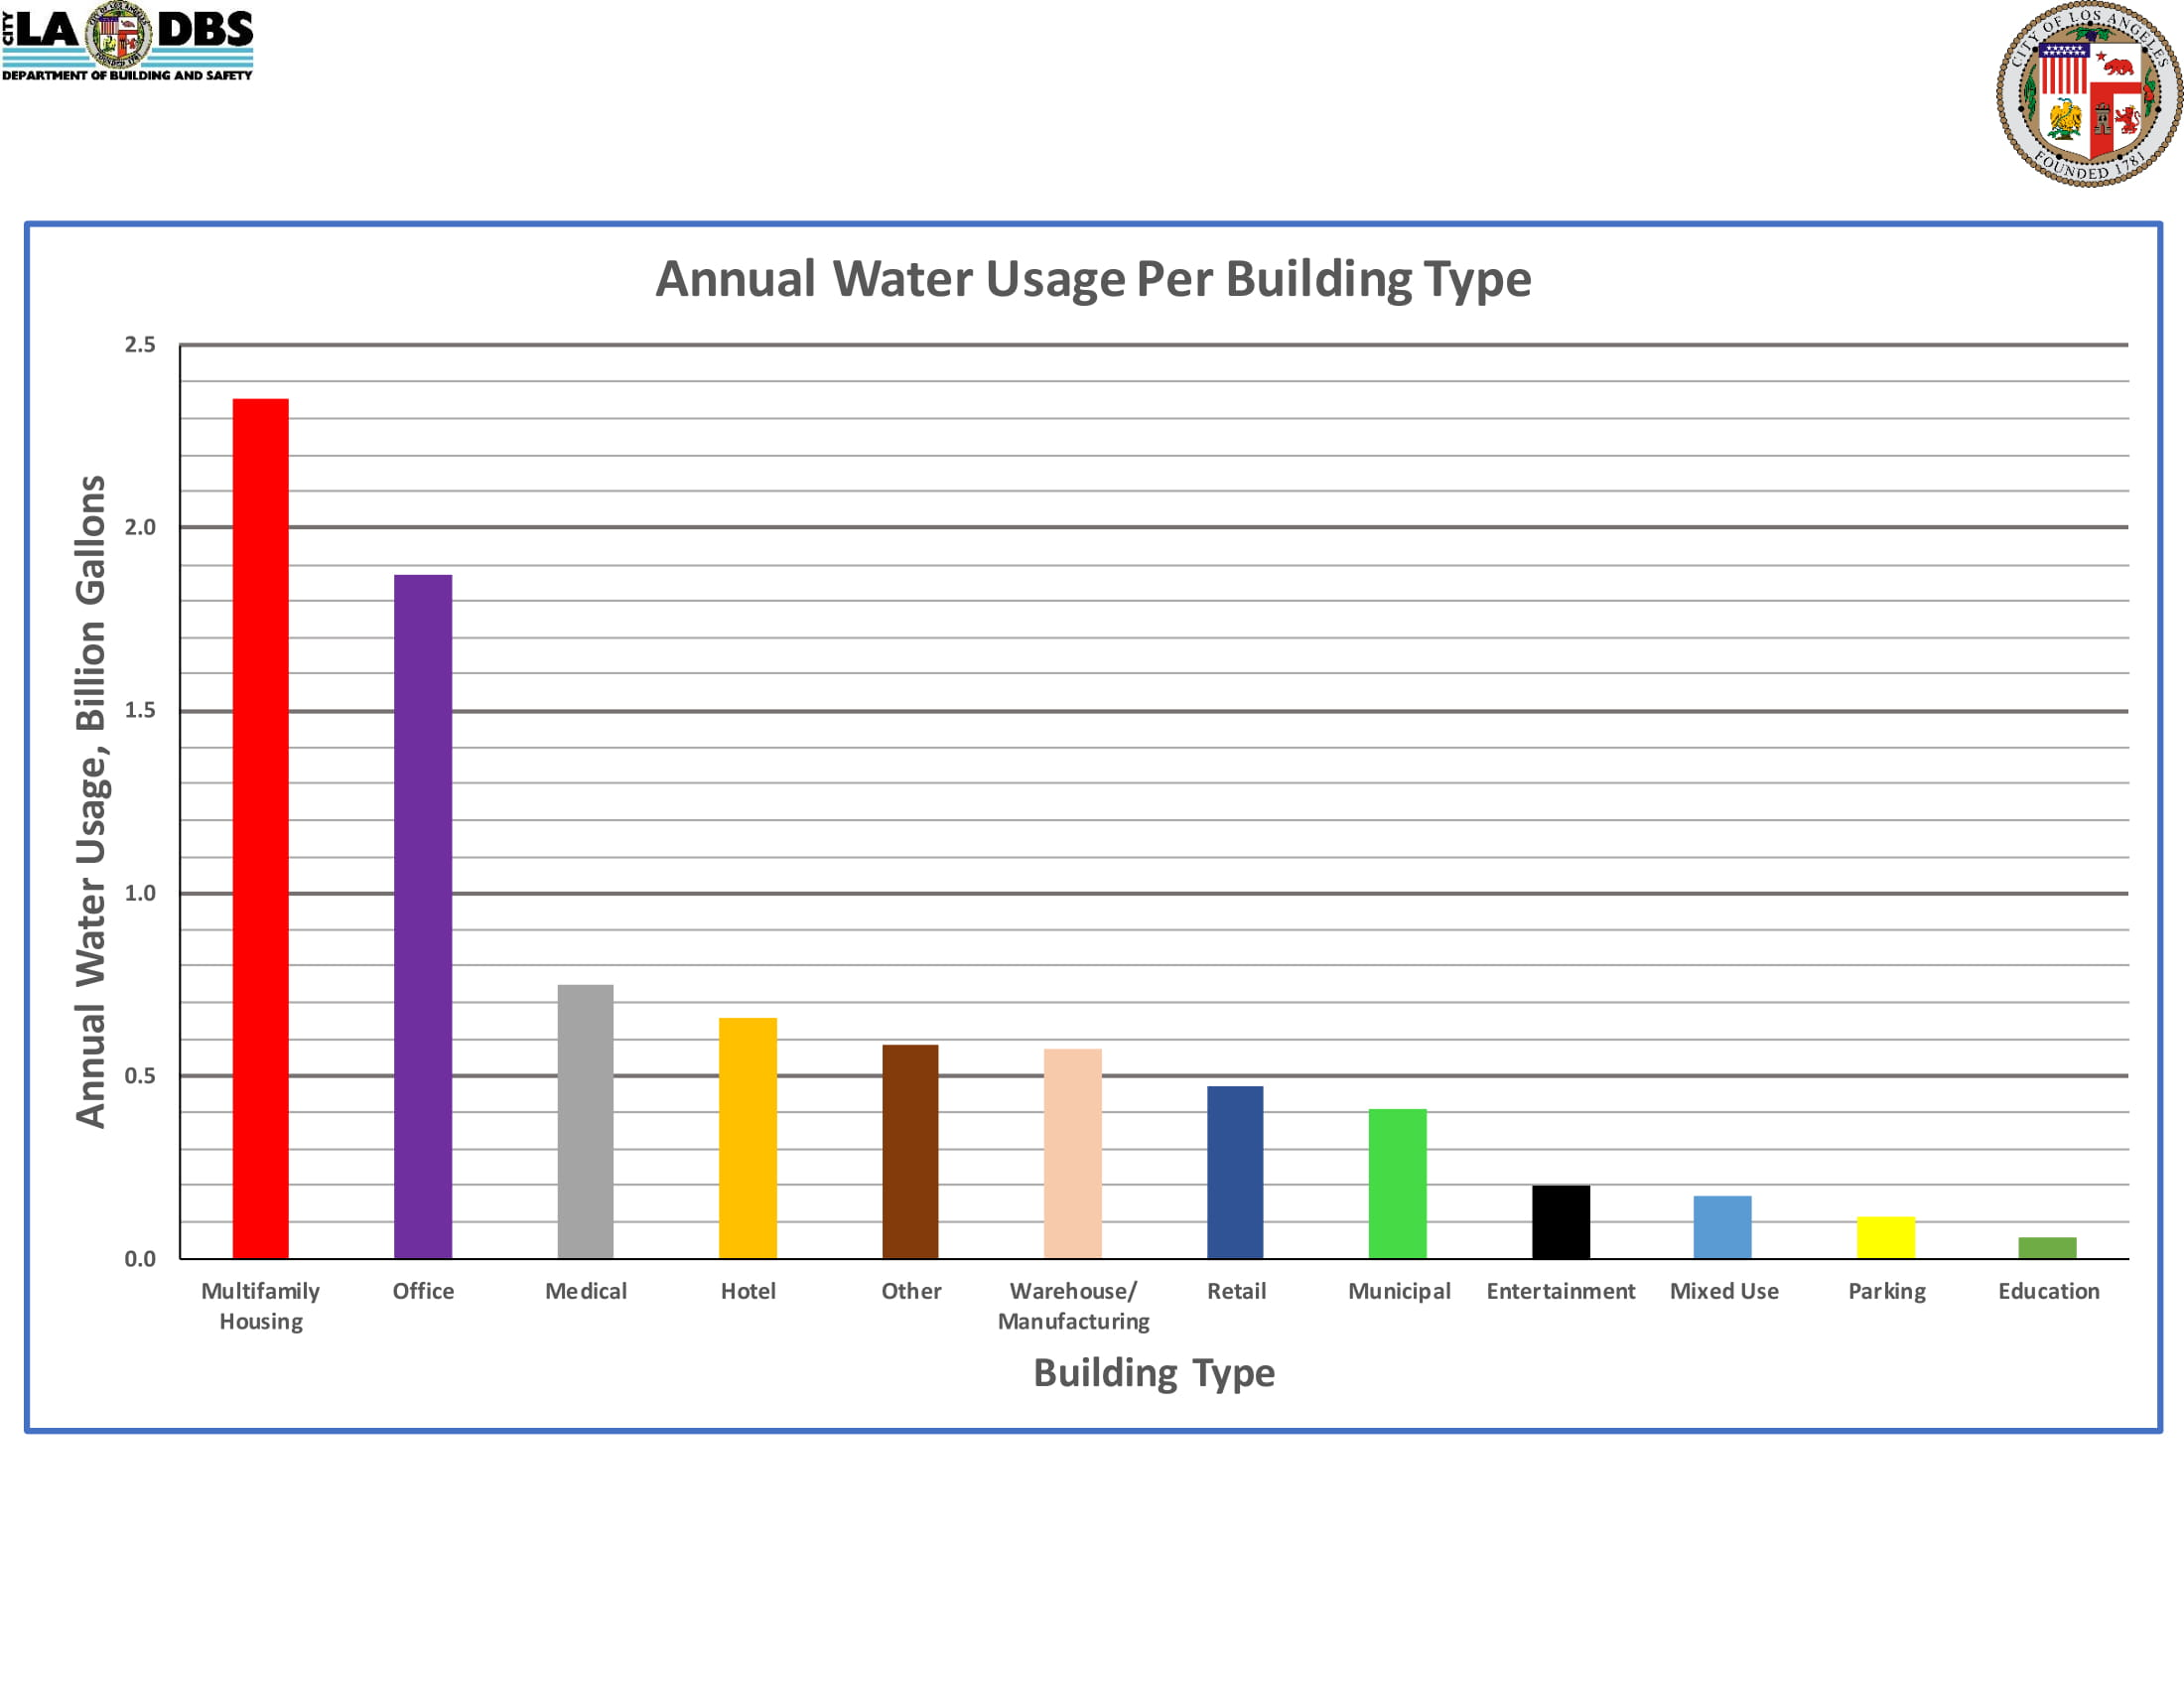 Annual Water Usage Per Building Type (Bar)